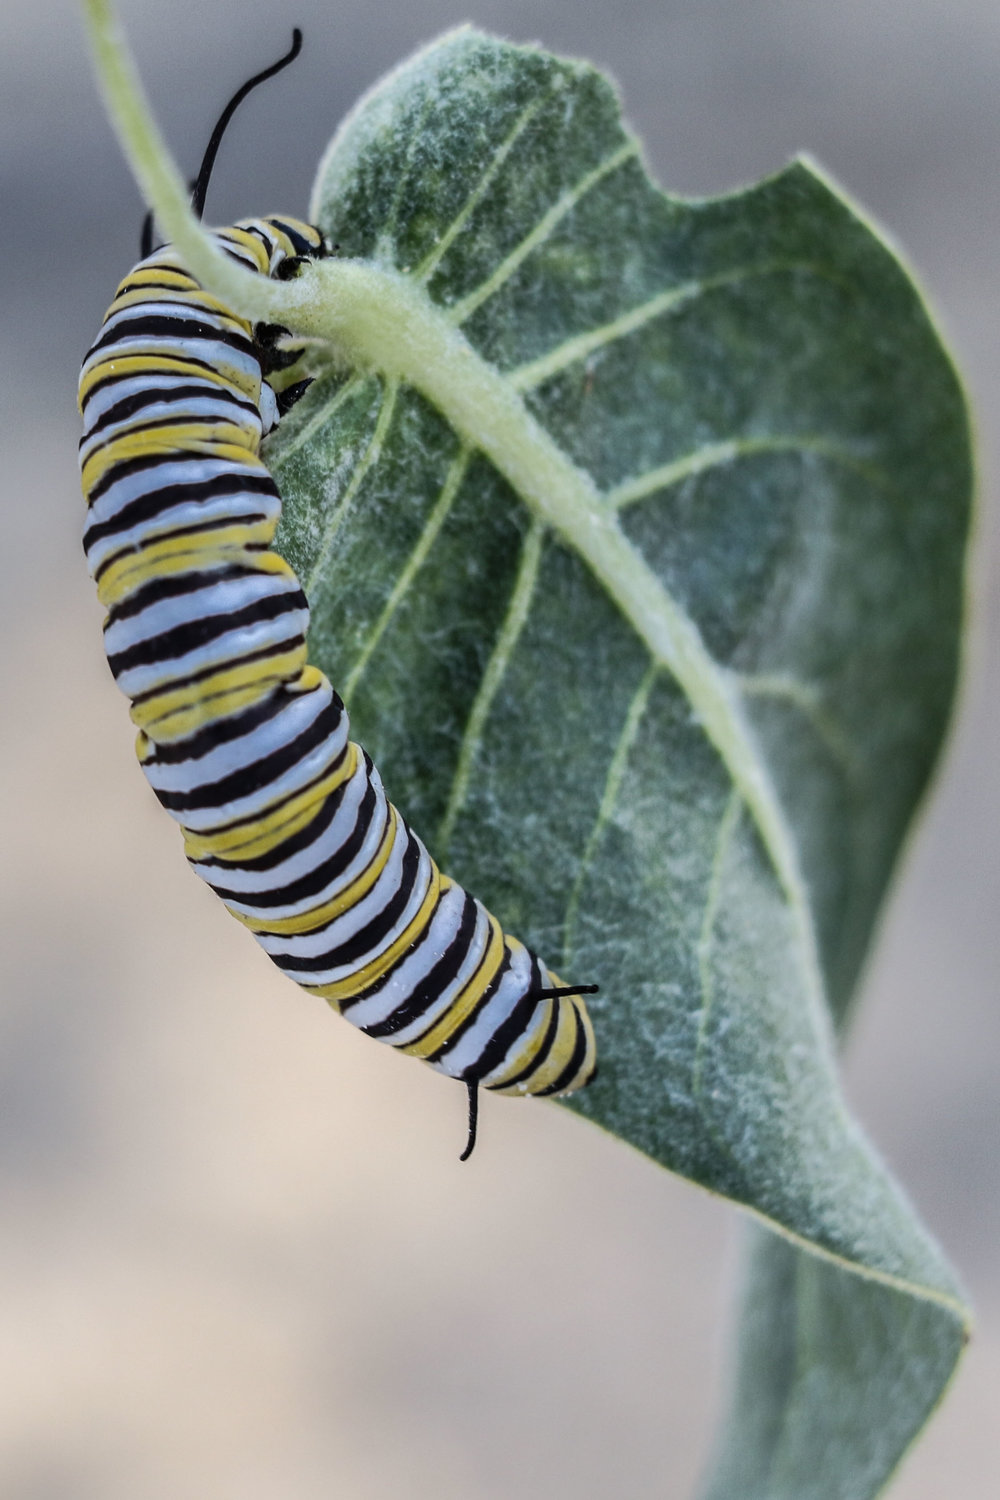 Caterpillar on the leaf of Asclepias vestita, Woolly Milkweed.